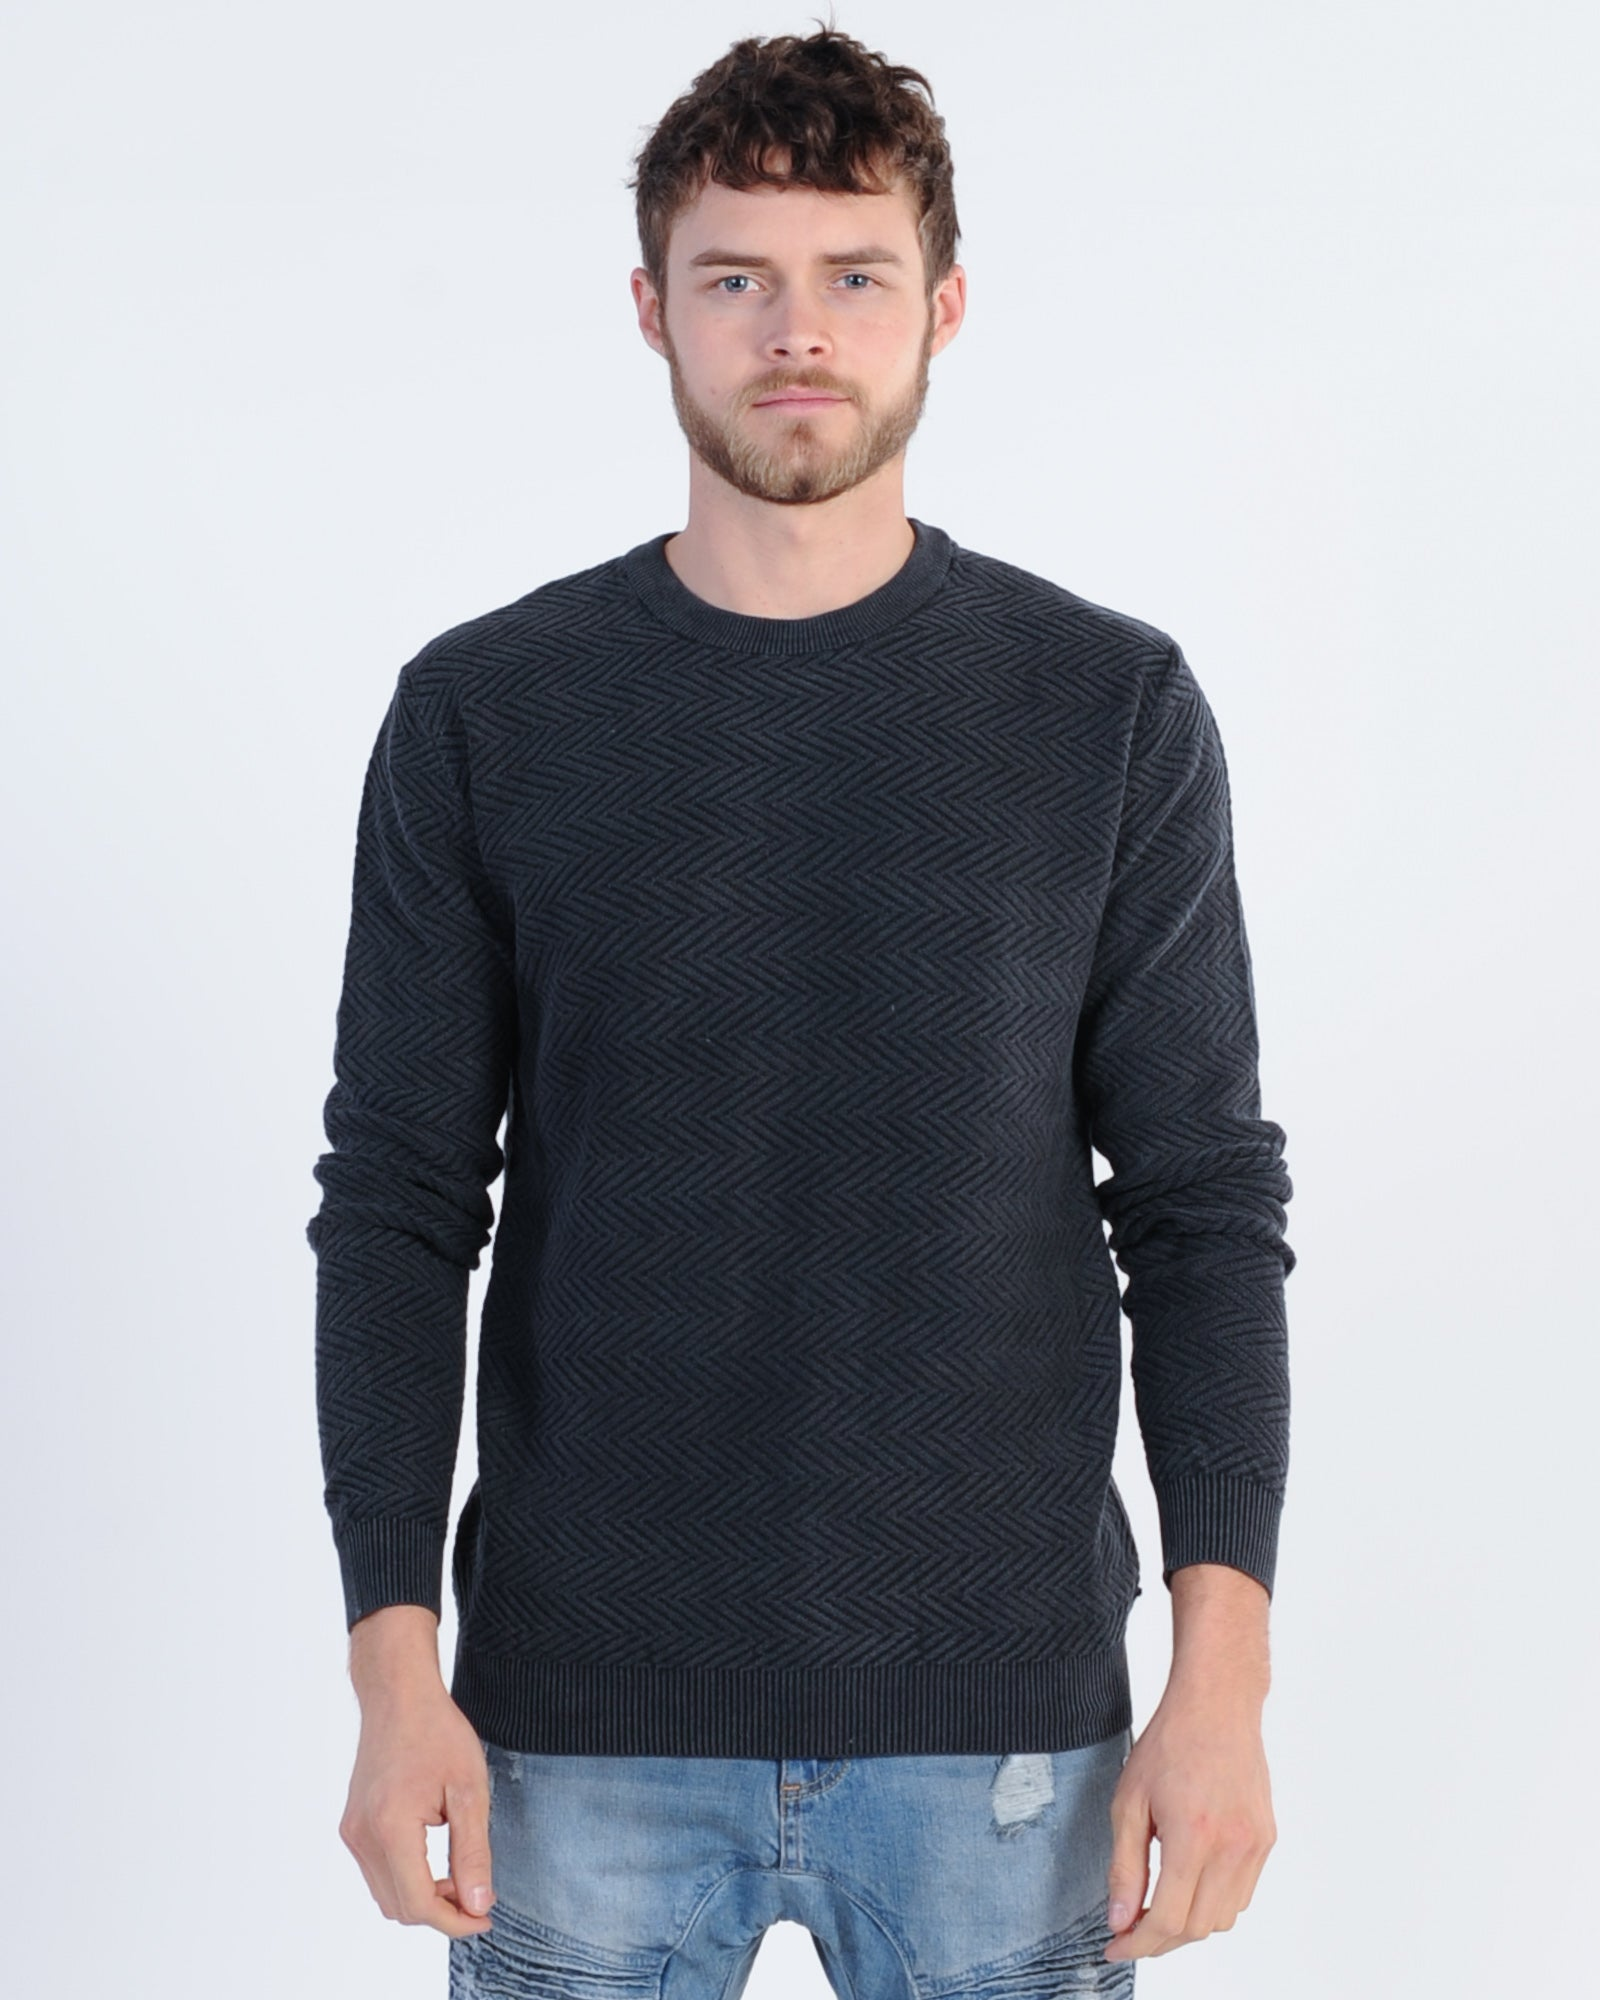 Industrie Nelson Knit Jumper - Black